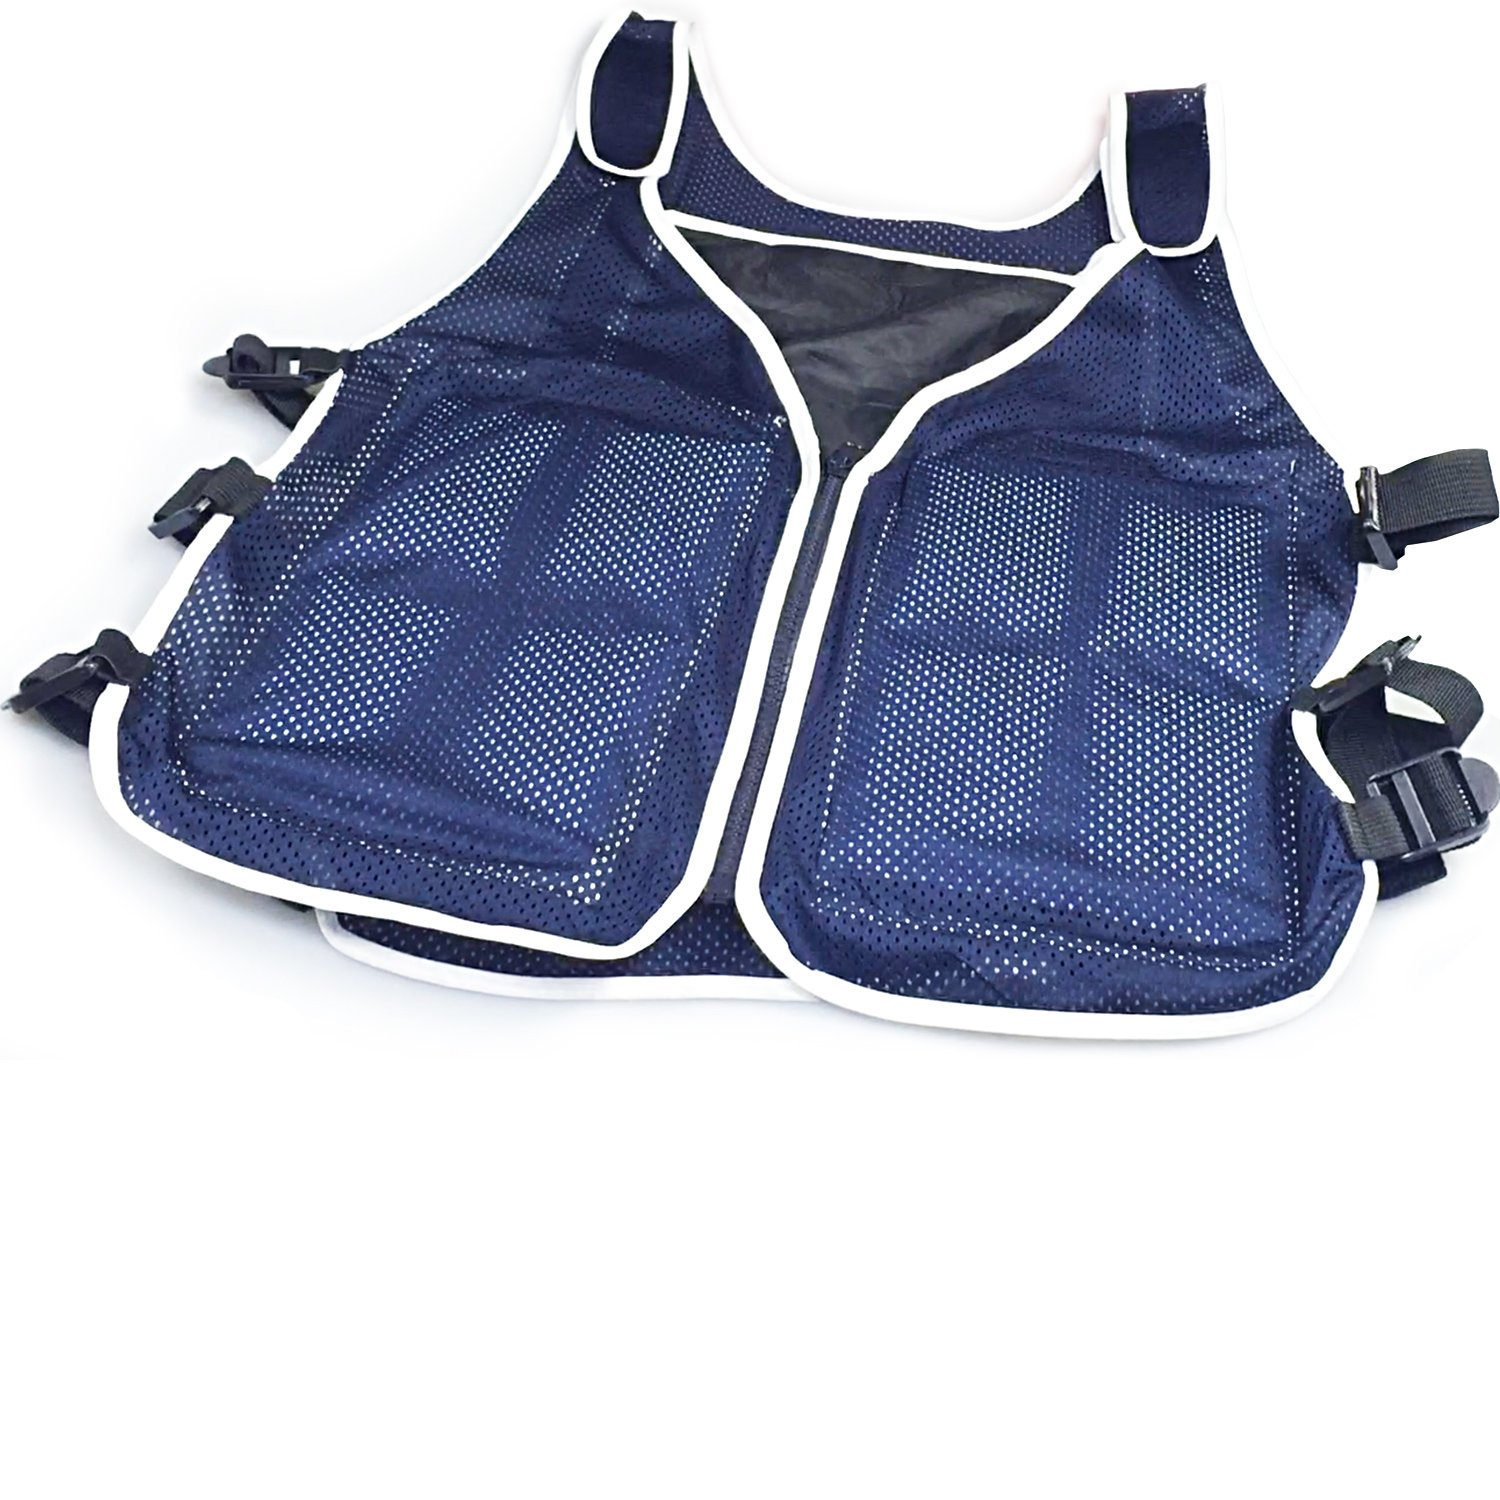 Ultimate Cooling Vest   Ice Vest - 8 x Body Ice Packs For Double Cooling Time - #1 Ice Cooling Vest For MS - Sport - Motorcycle - Cooking - Mascot - Cosplay Adjustable Cooling Shirt